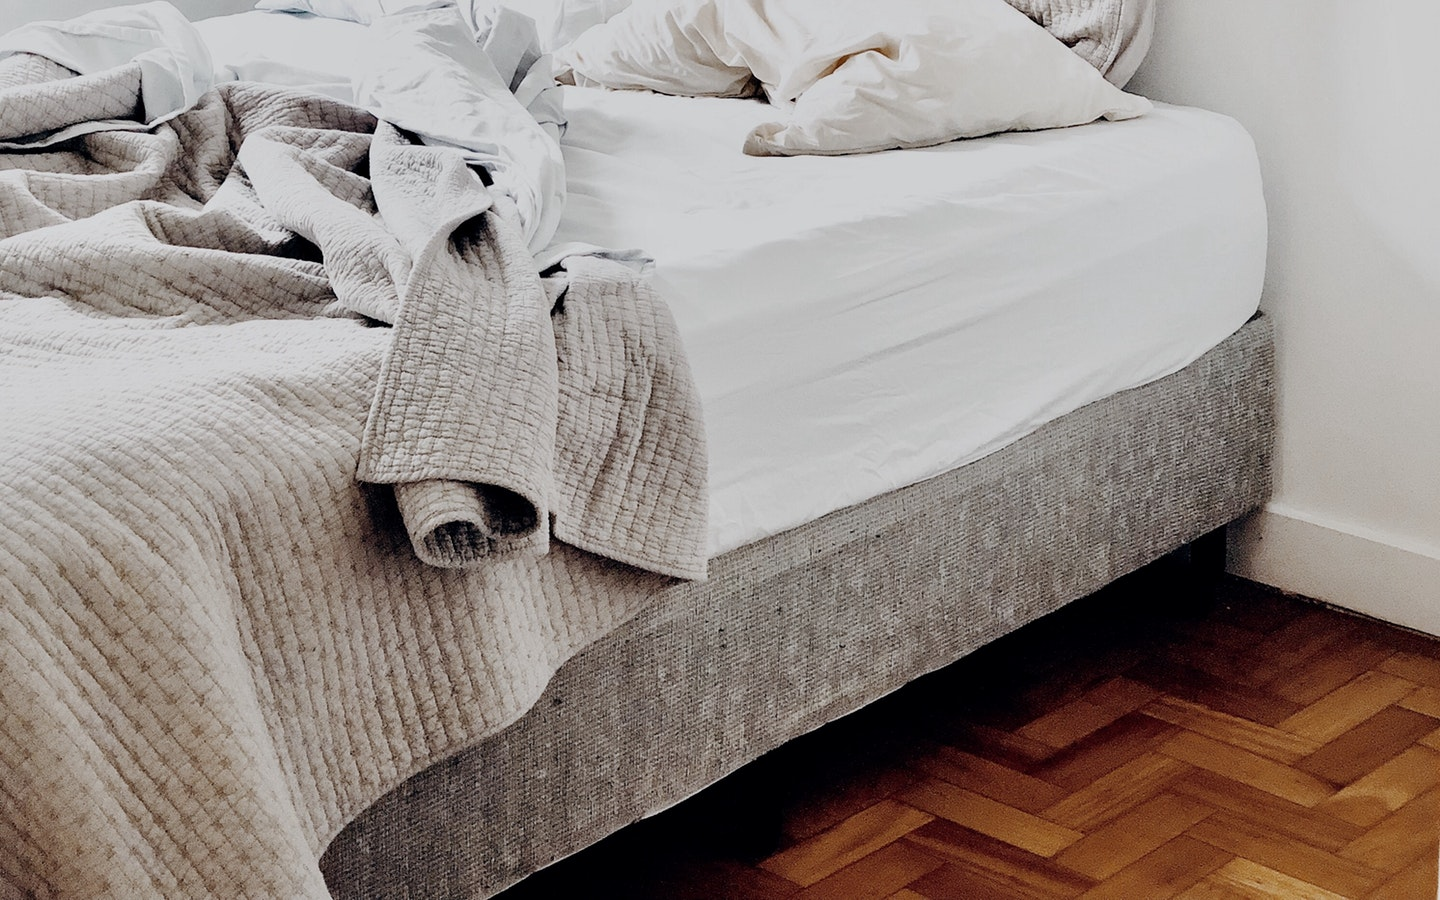 Setting up your bed against a wall is one of the best bedroom decor ideas that can keep your bedroom clutter-free.